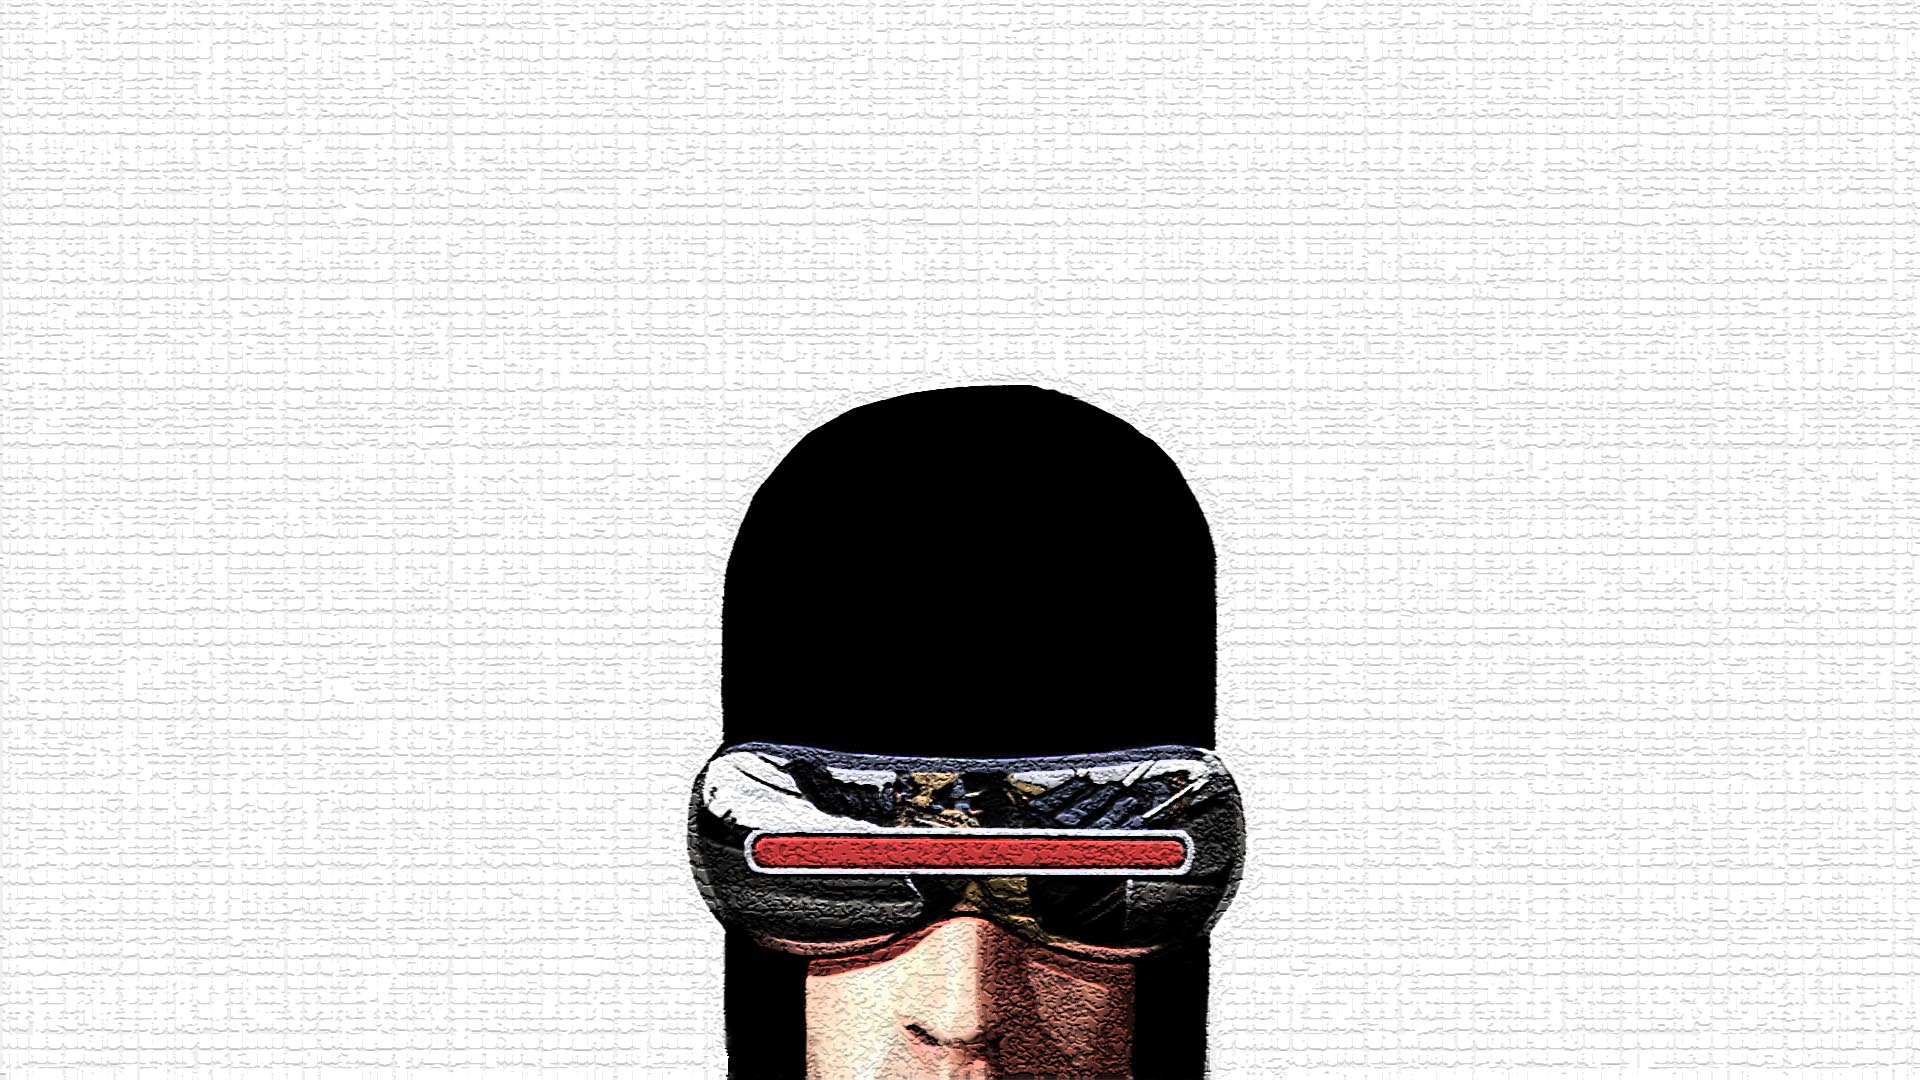 Cyclops Full HD Wallpaper And Background Image